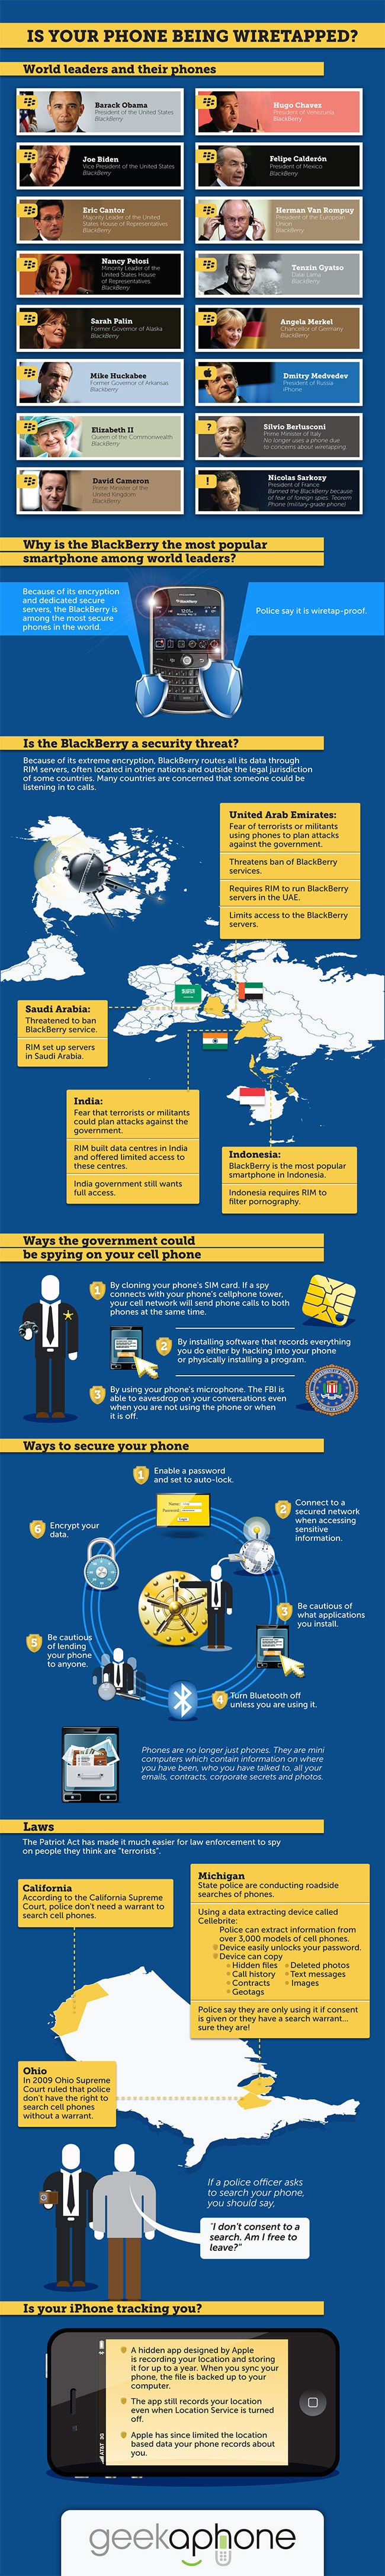 Mobile Security Wiretapping Methods Infographic